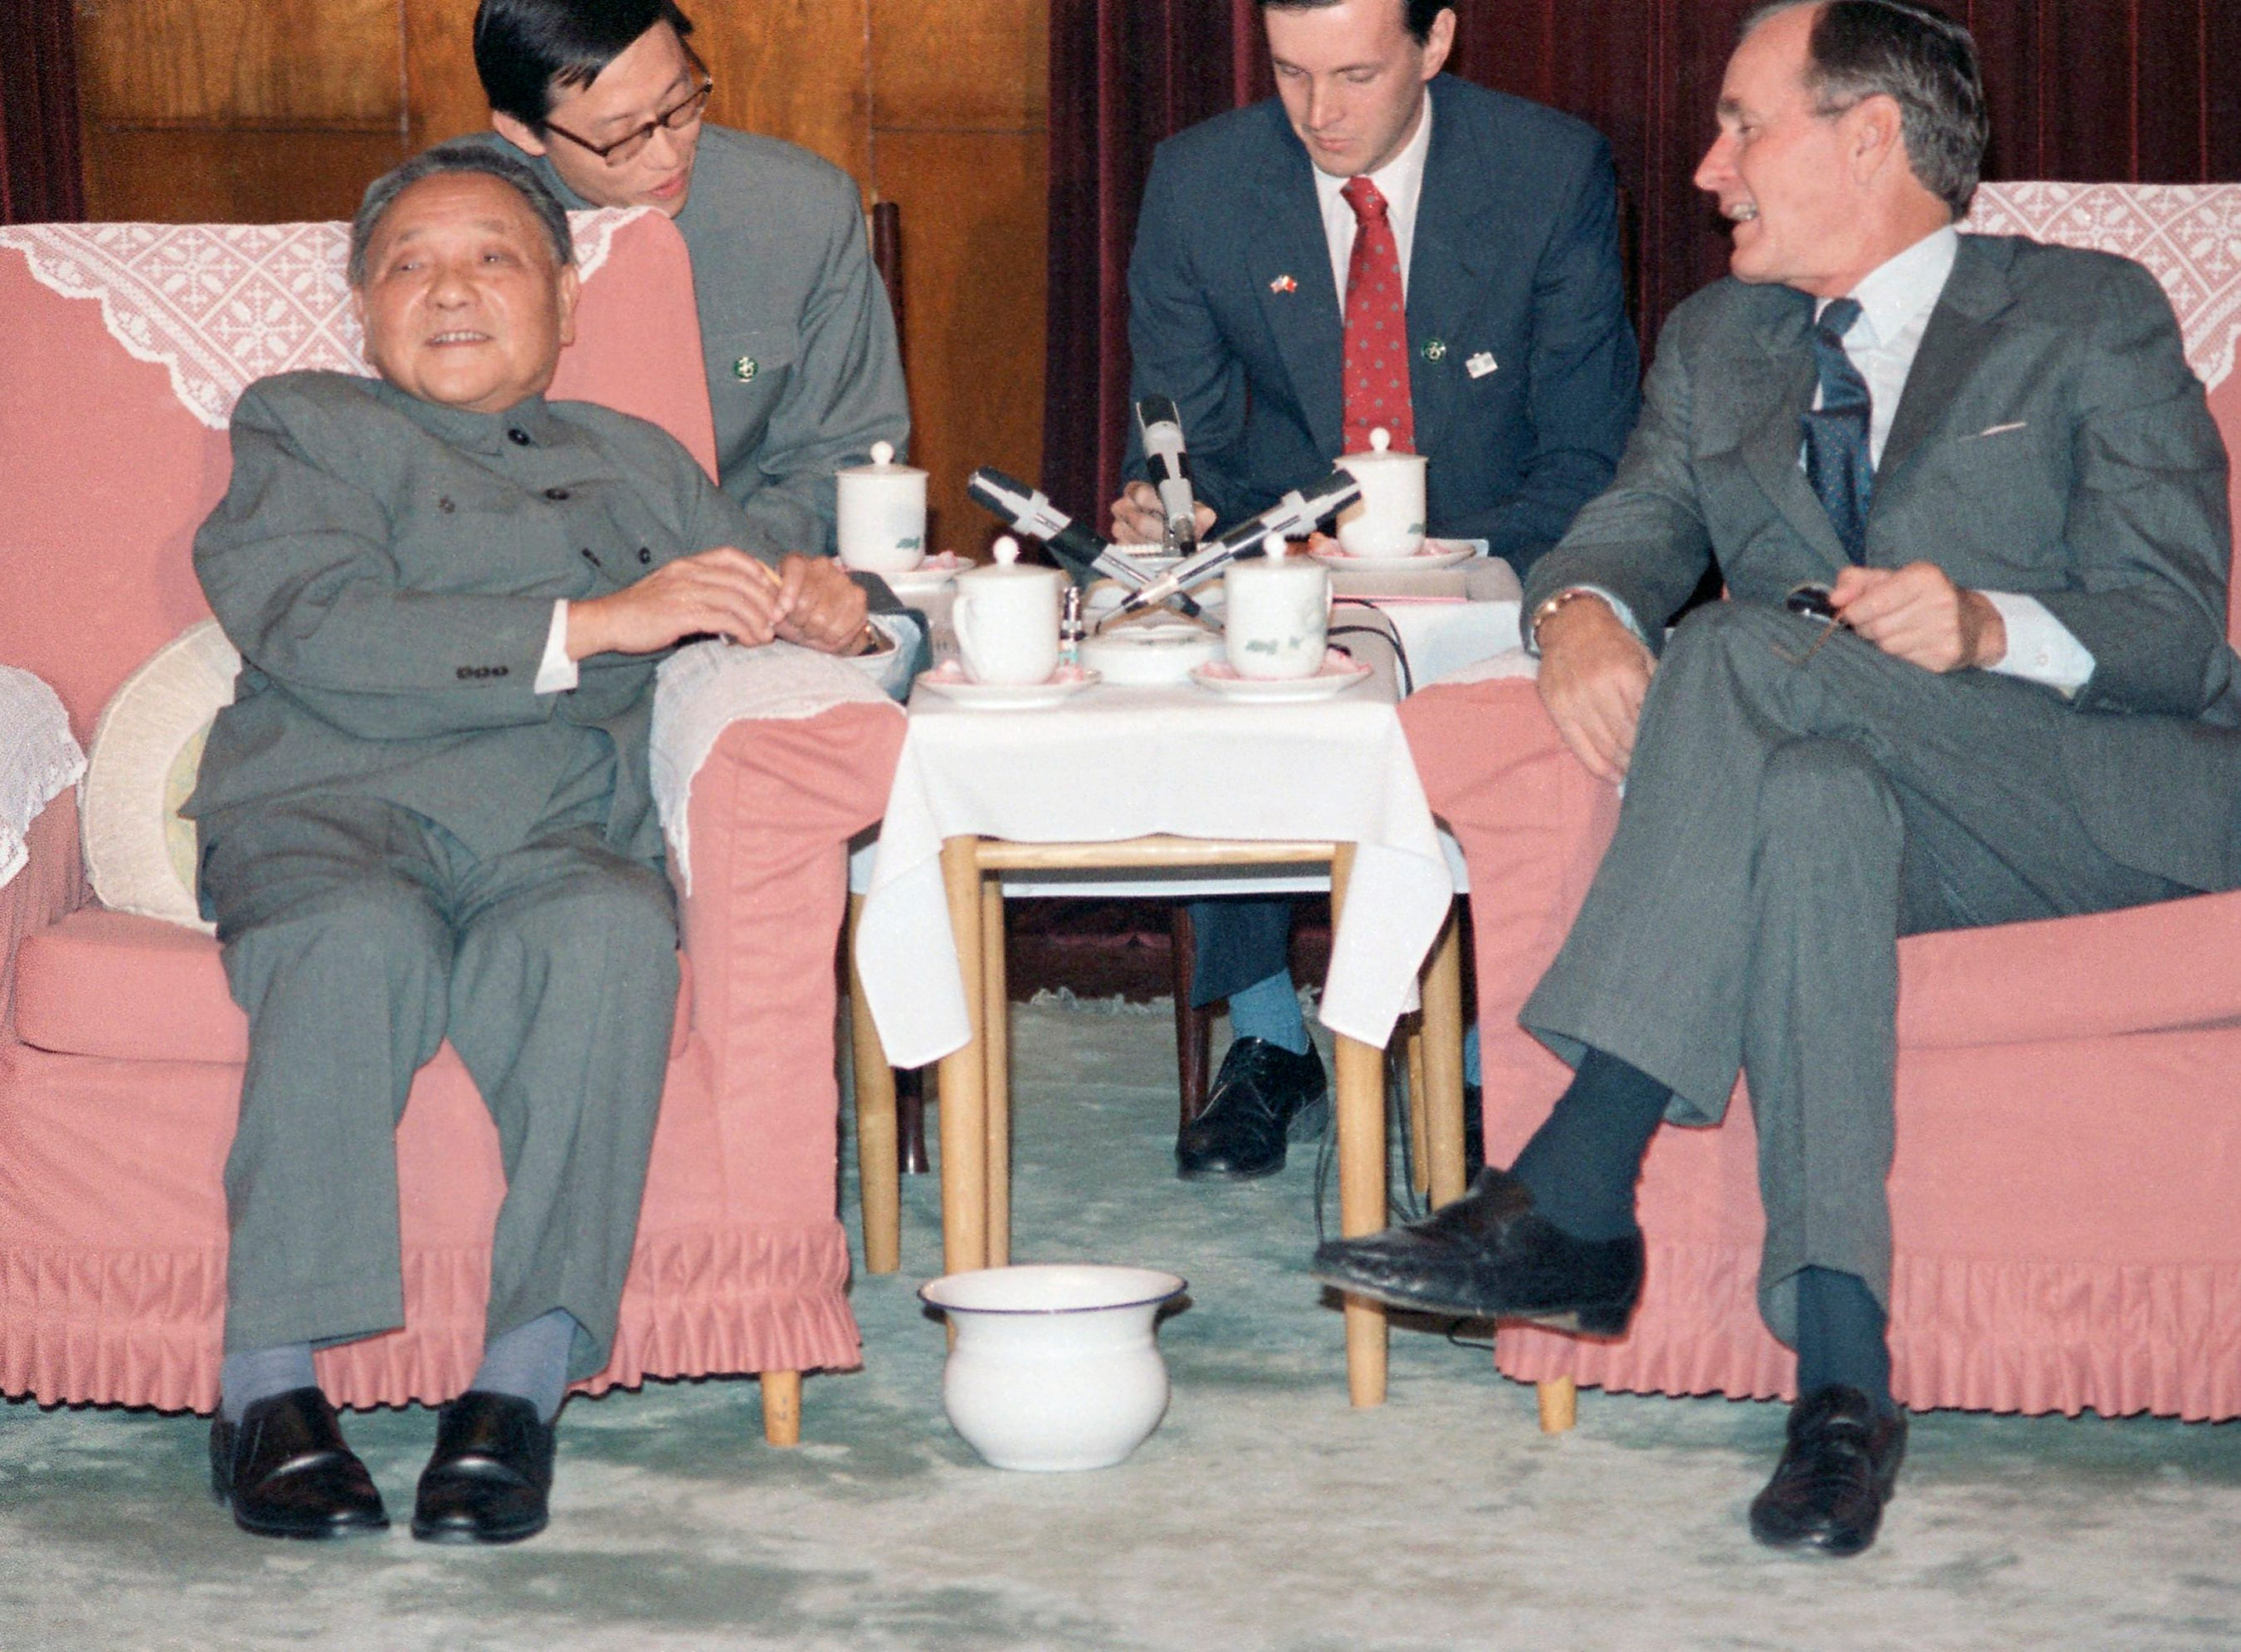 U.S. Vice-President George H. W. Bush, right, and China's top leader, Deng Xiaoping meet in Beijing, China, Oct. 13, 1985. Interpreters in center are unidentified. (AP Photo/Neal Ulevich)